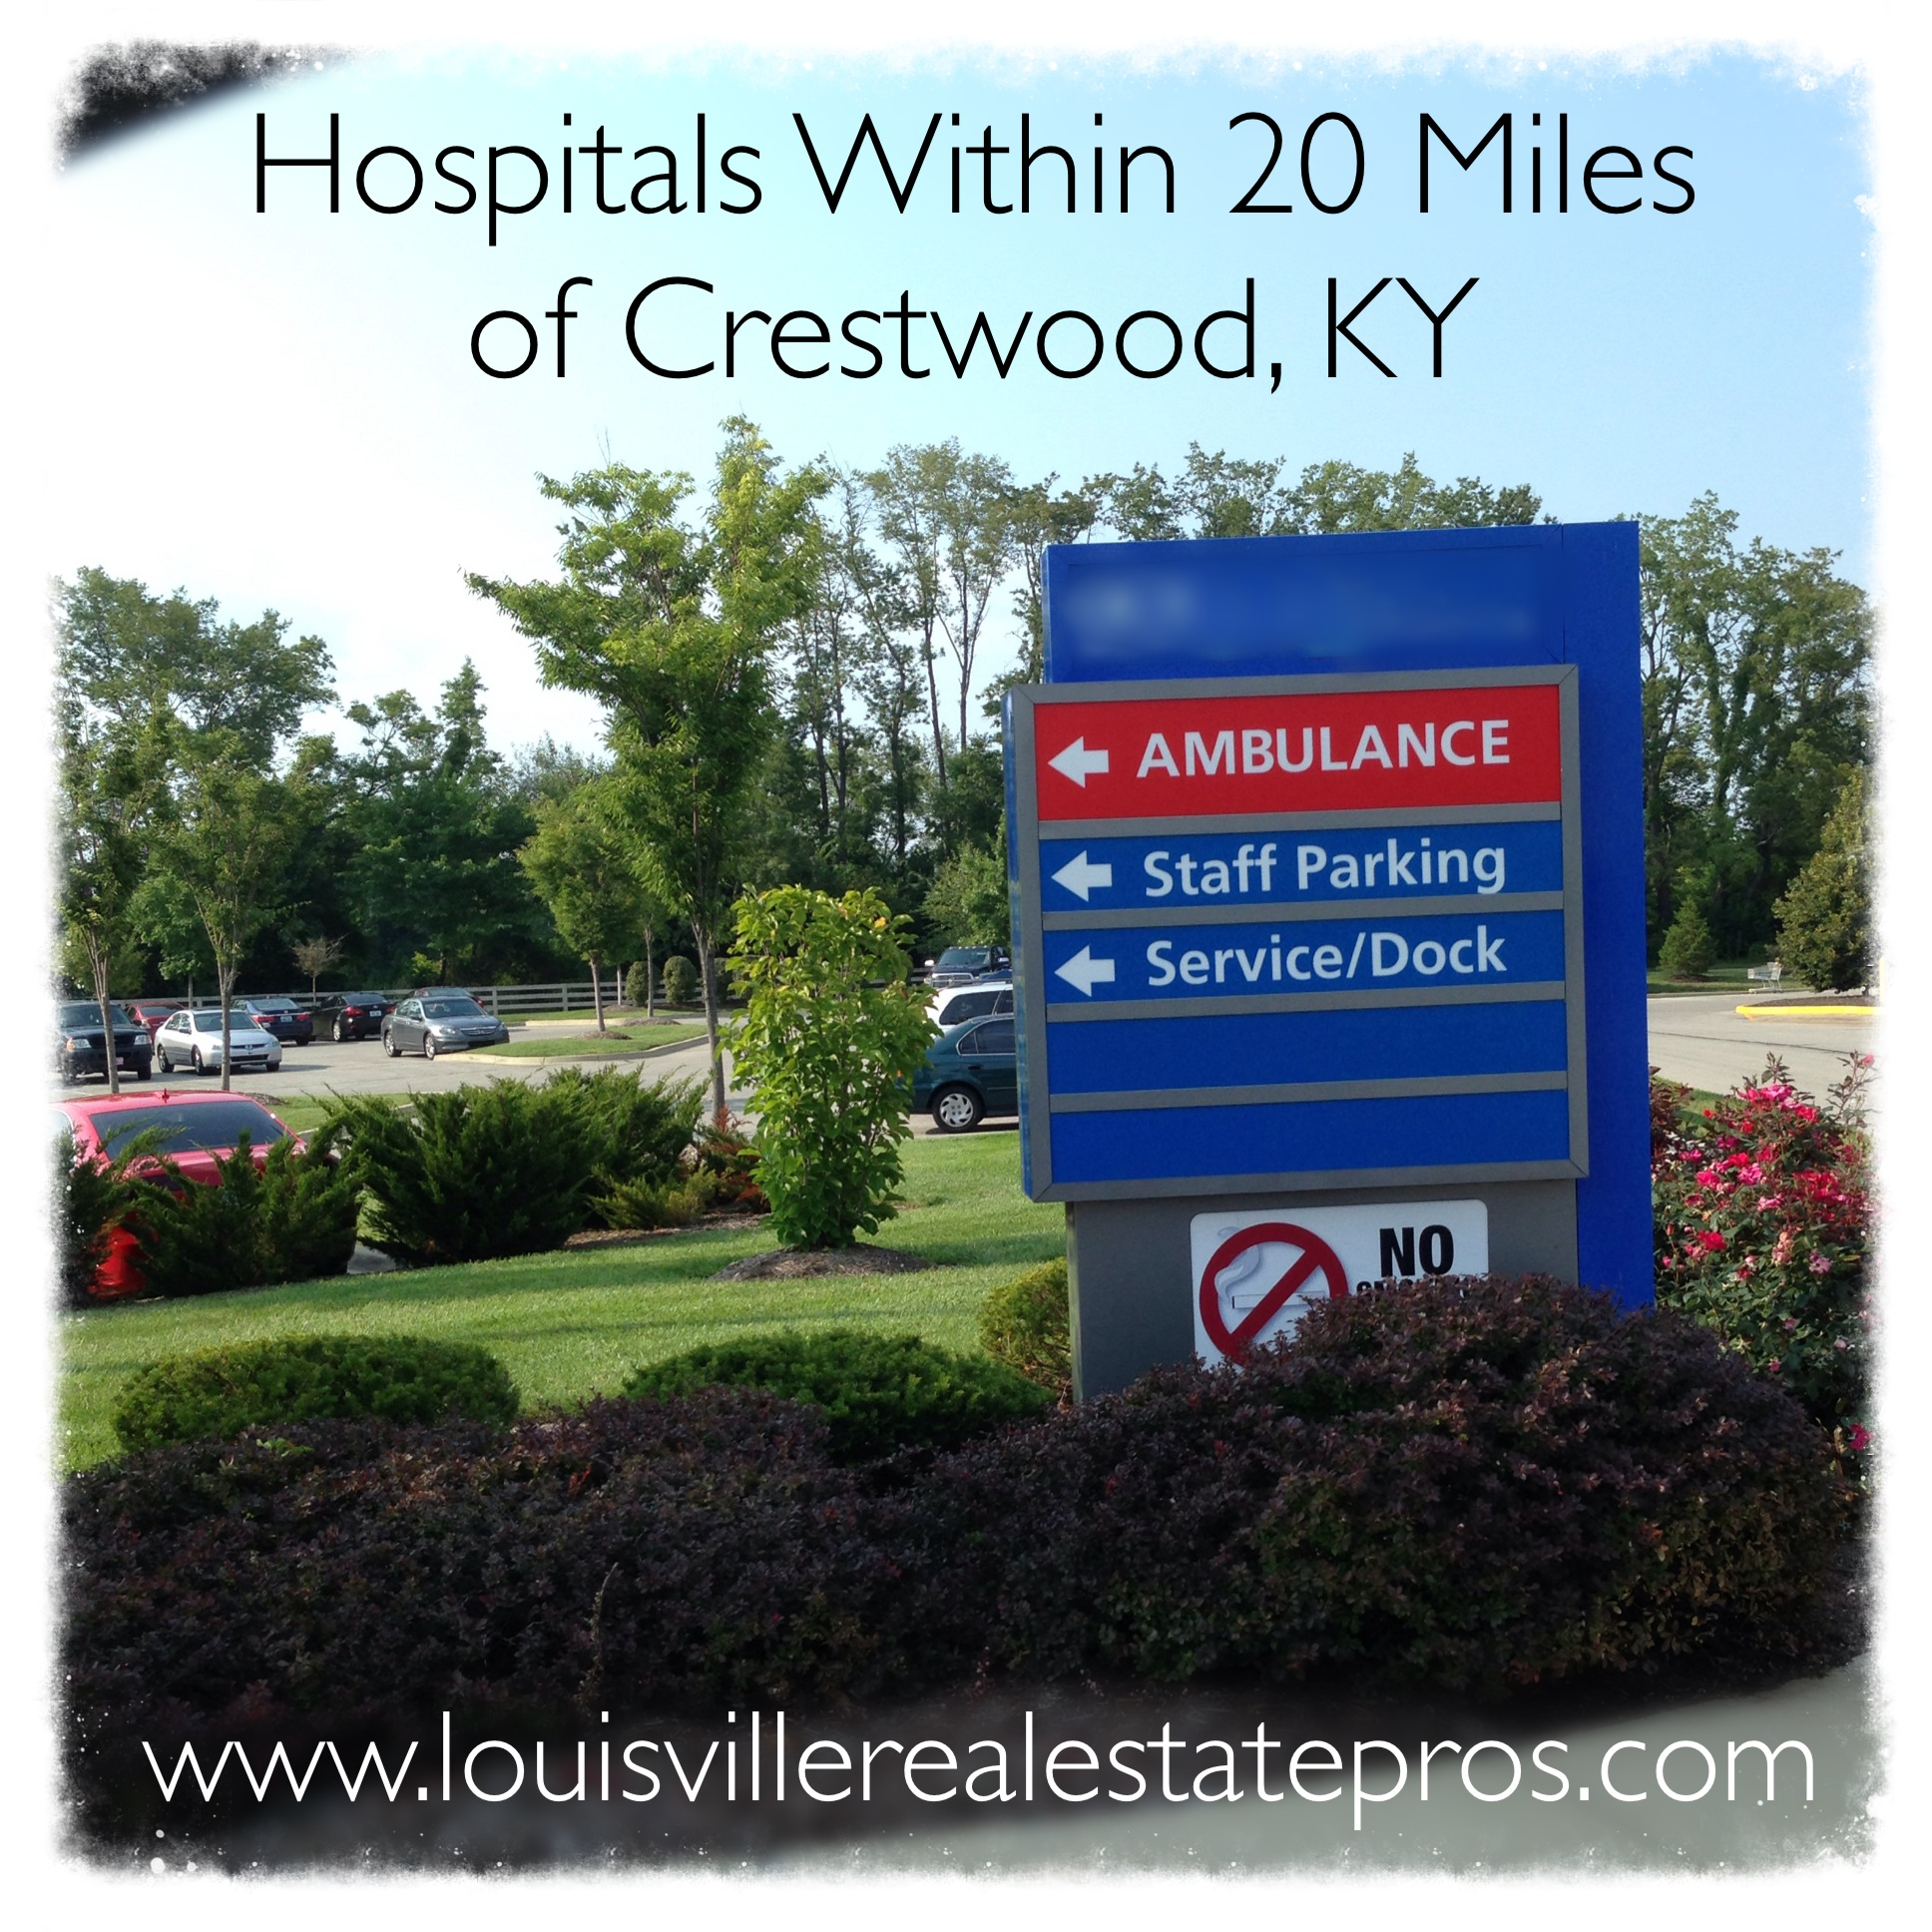 Hospitals Within 20 Miles of Crestwood, KY